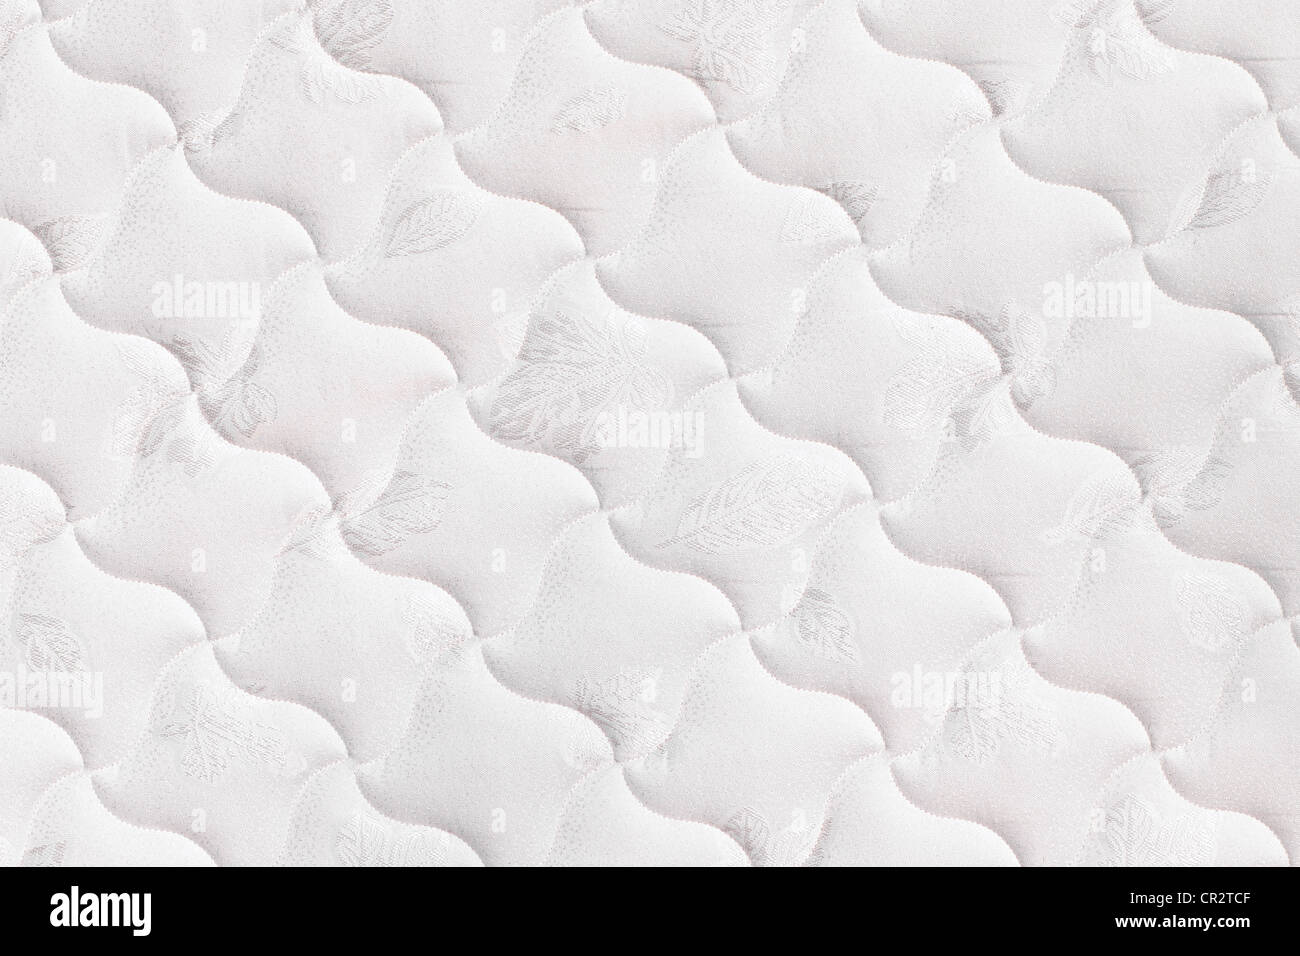 Background of soft comfortable quilted white mattress - Stock Image